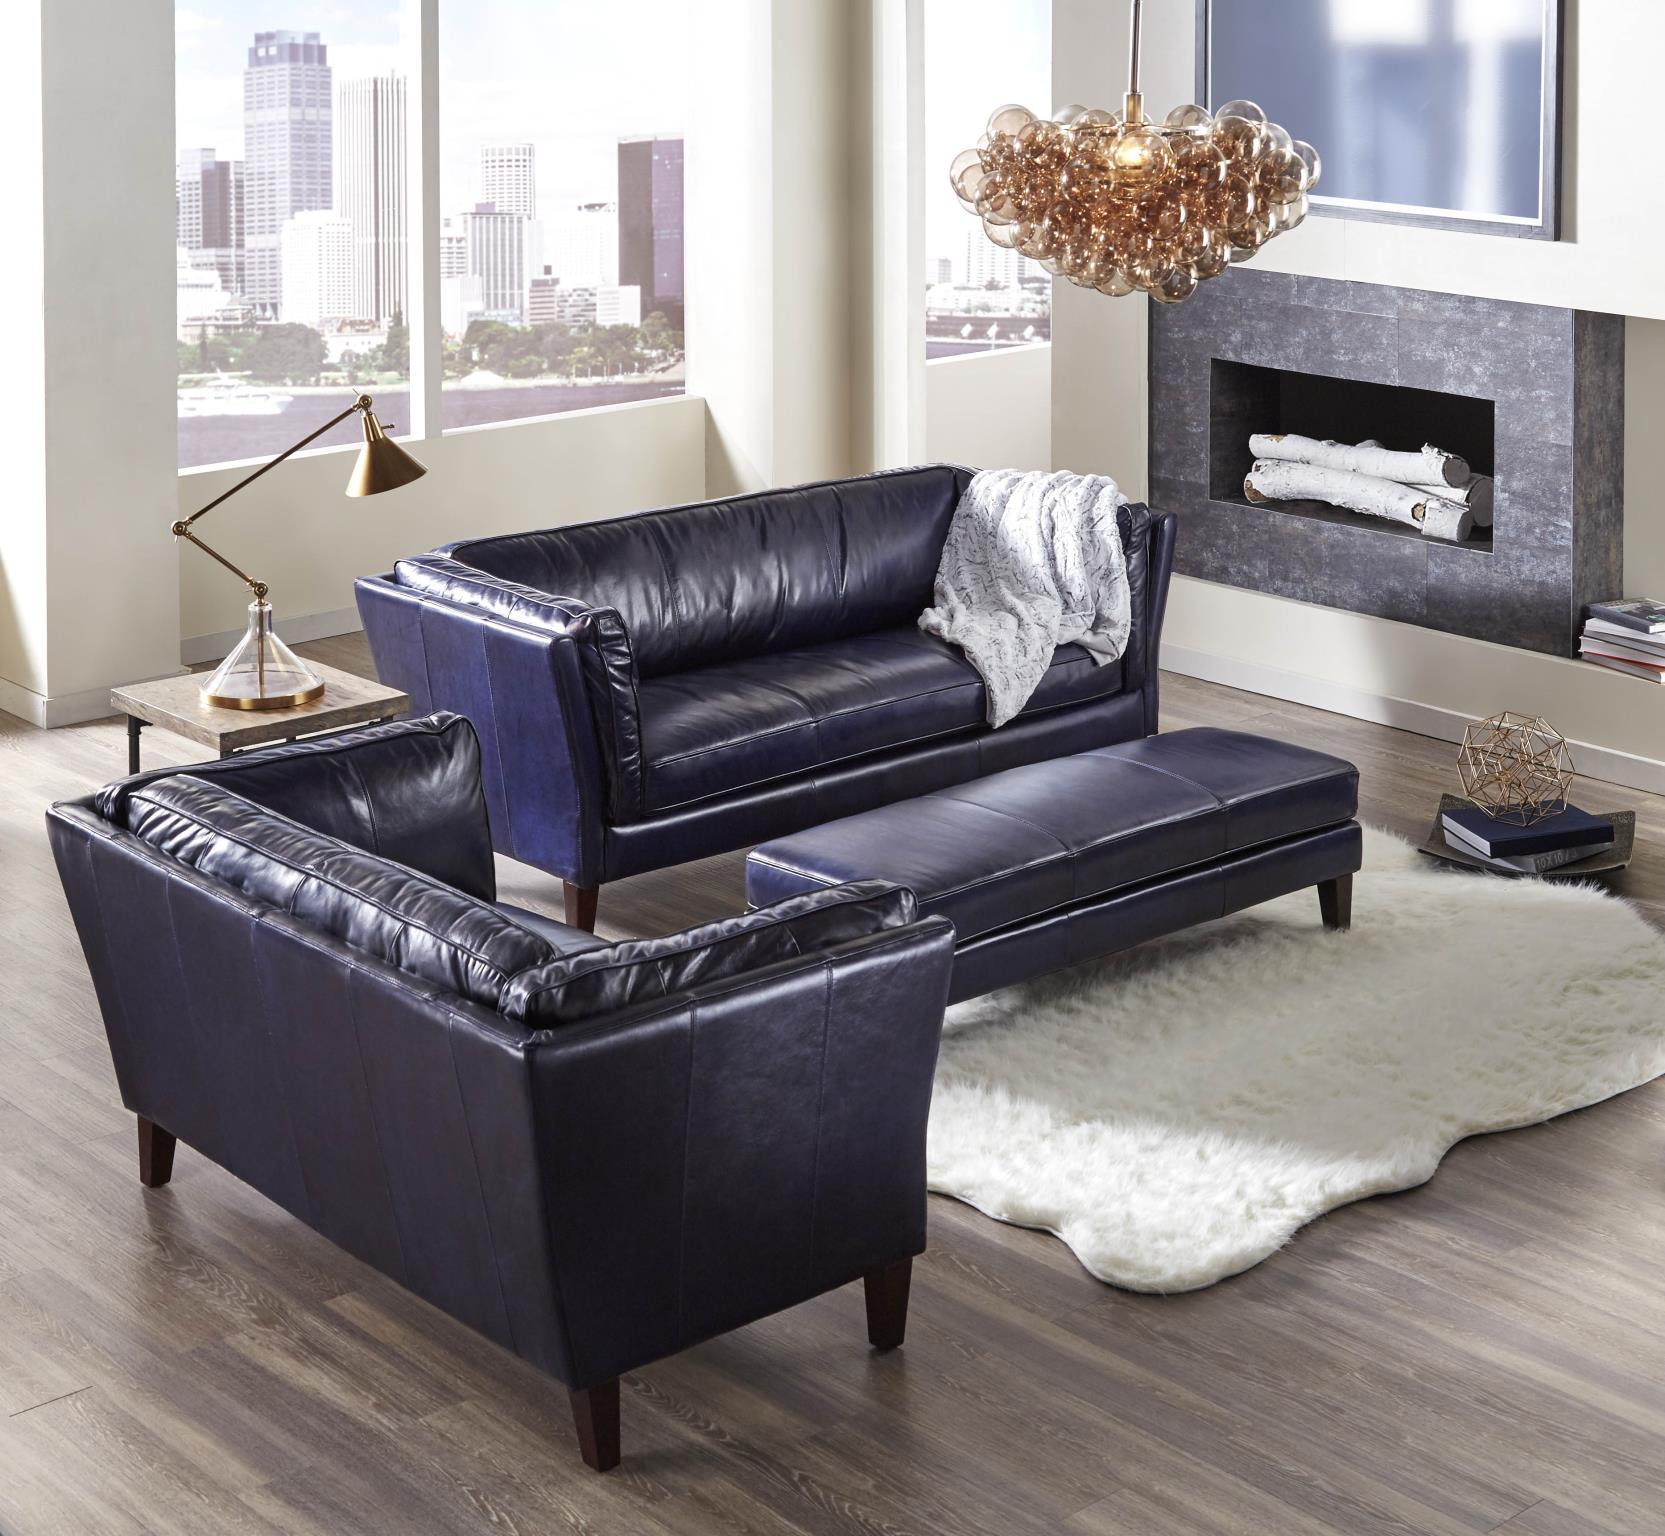 Alberta 1525 Top Grain Leather Sofa in Navy | Sofas and Sectionals